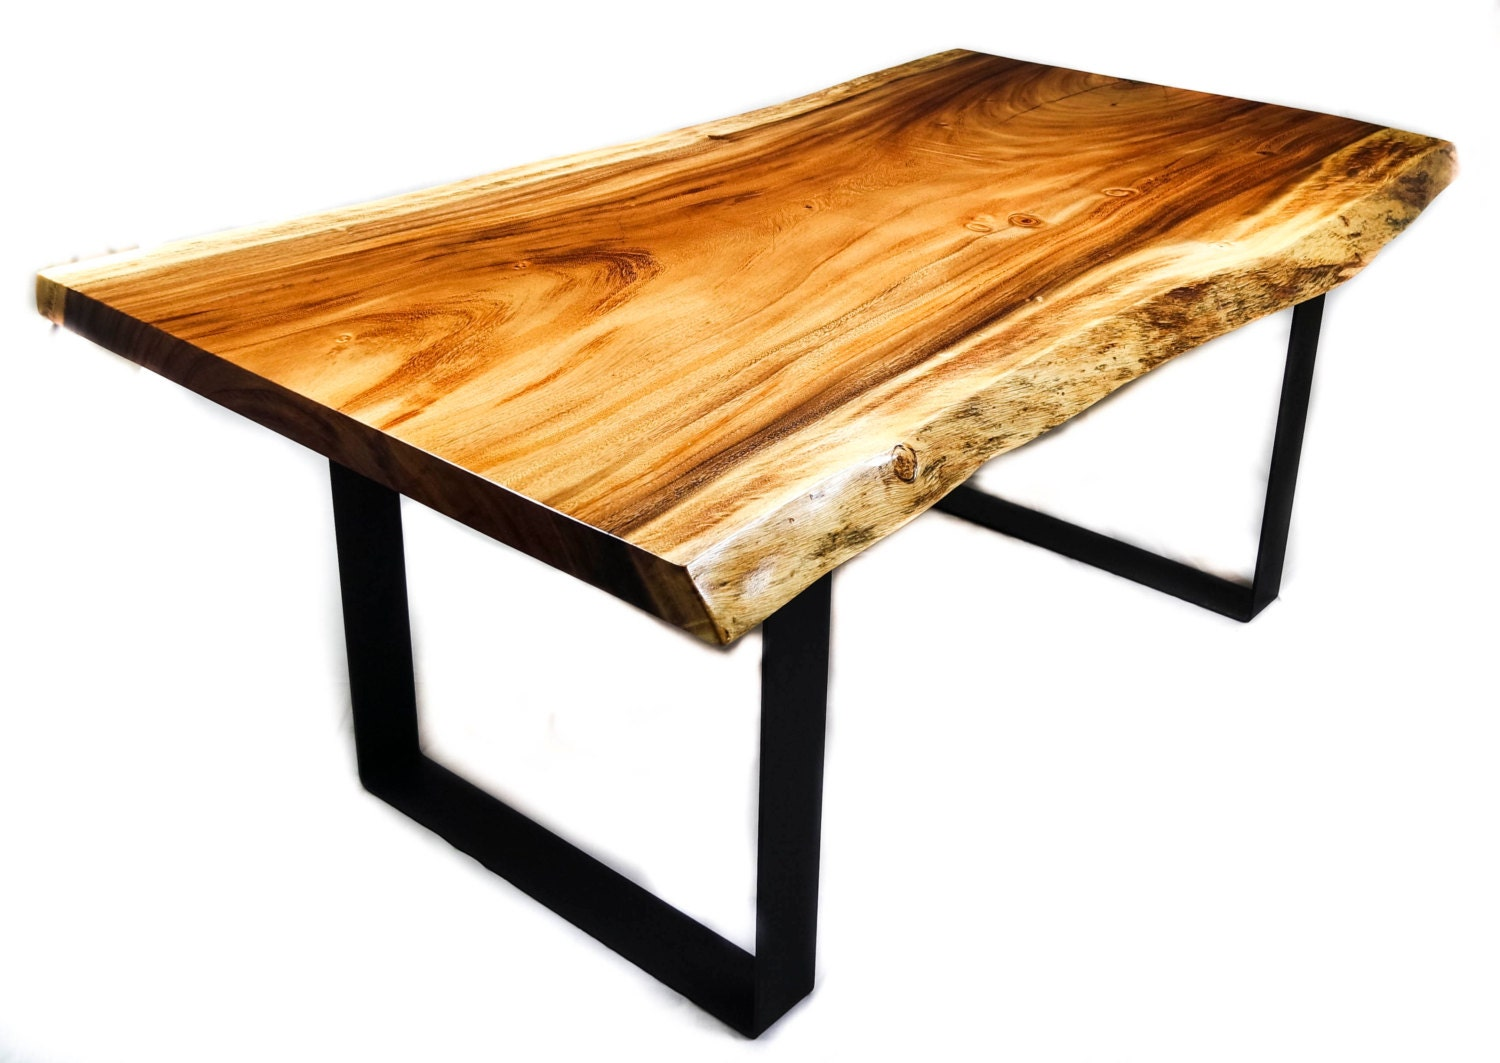 Monkey Pod Live Edge Dining Tables By Mericanrusticllc On Etsy